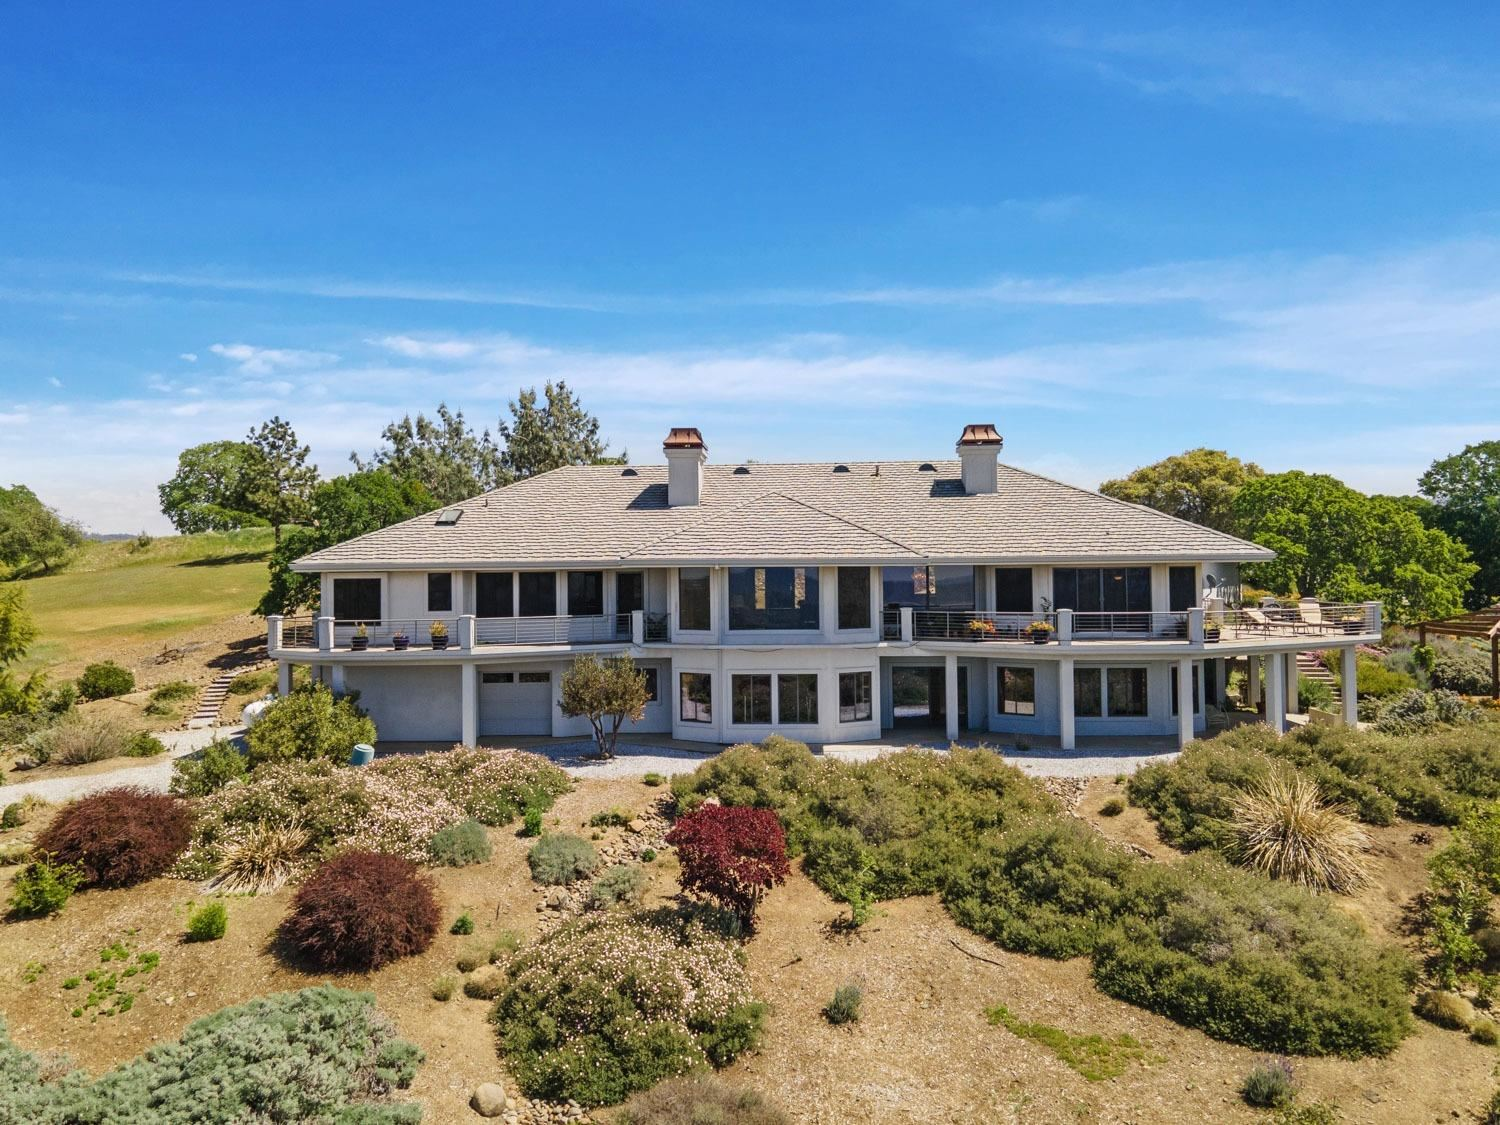 Photo of 22416 Lakeview Heights, Sonora, CA 95370 (MLS # 221036663)